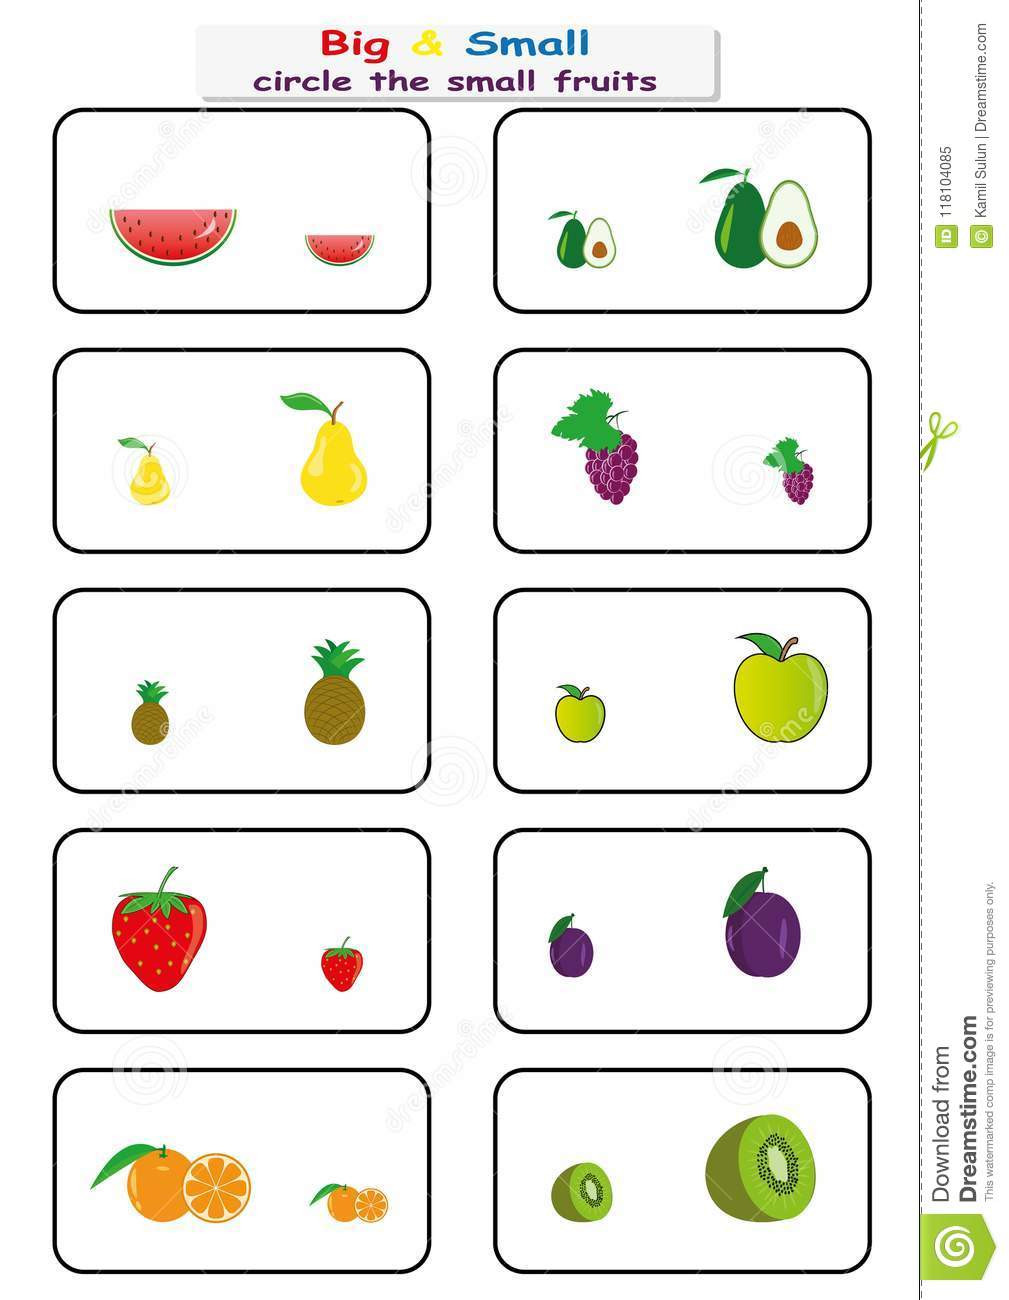 Preschool Opposite Worksheet Circle the Small Fruits Find Big Small Worksheet for